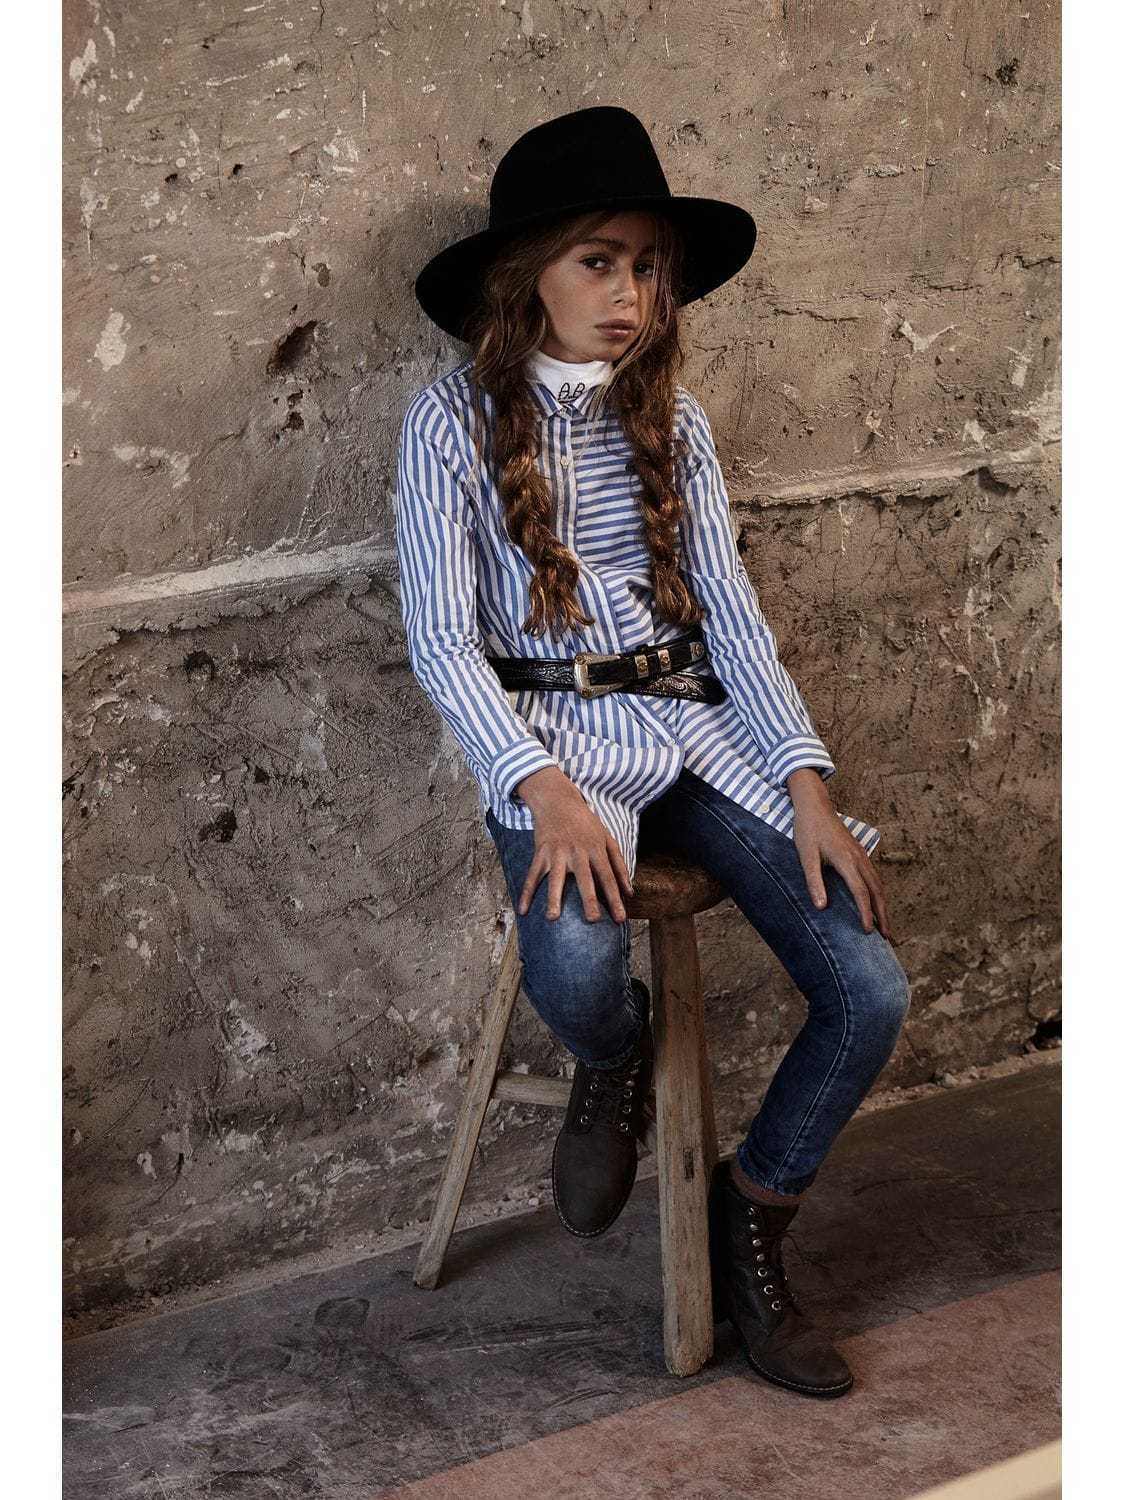 【Scotch & Soda】Girls シャツ